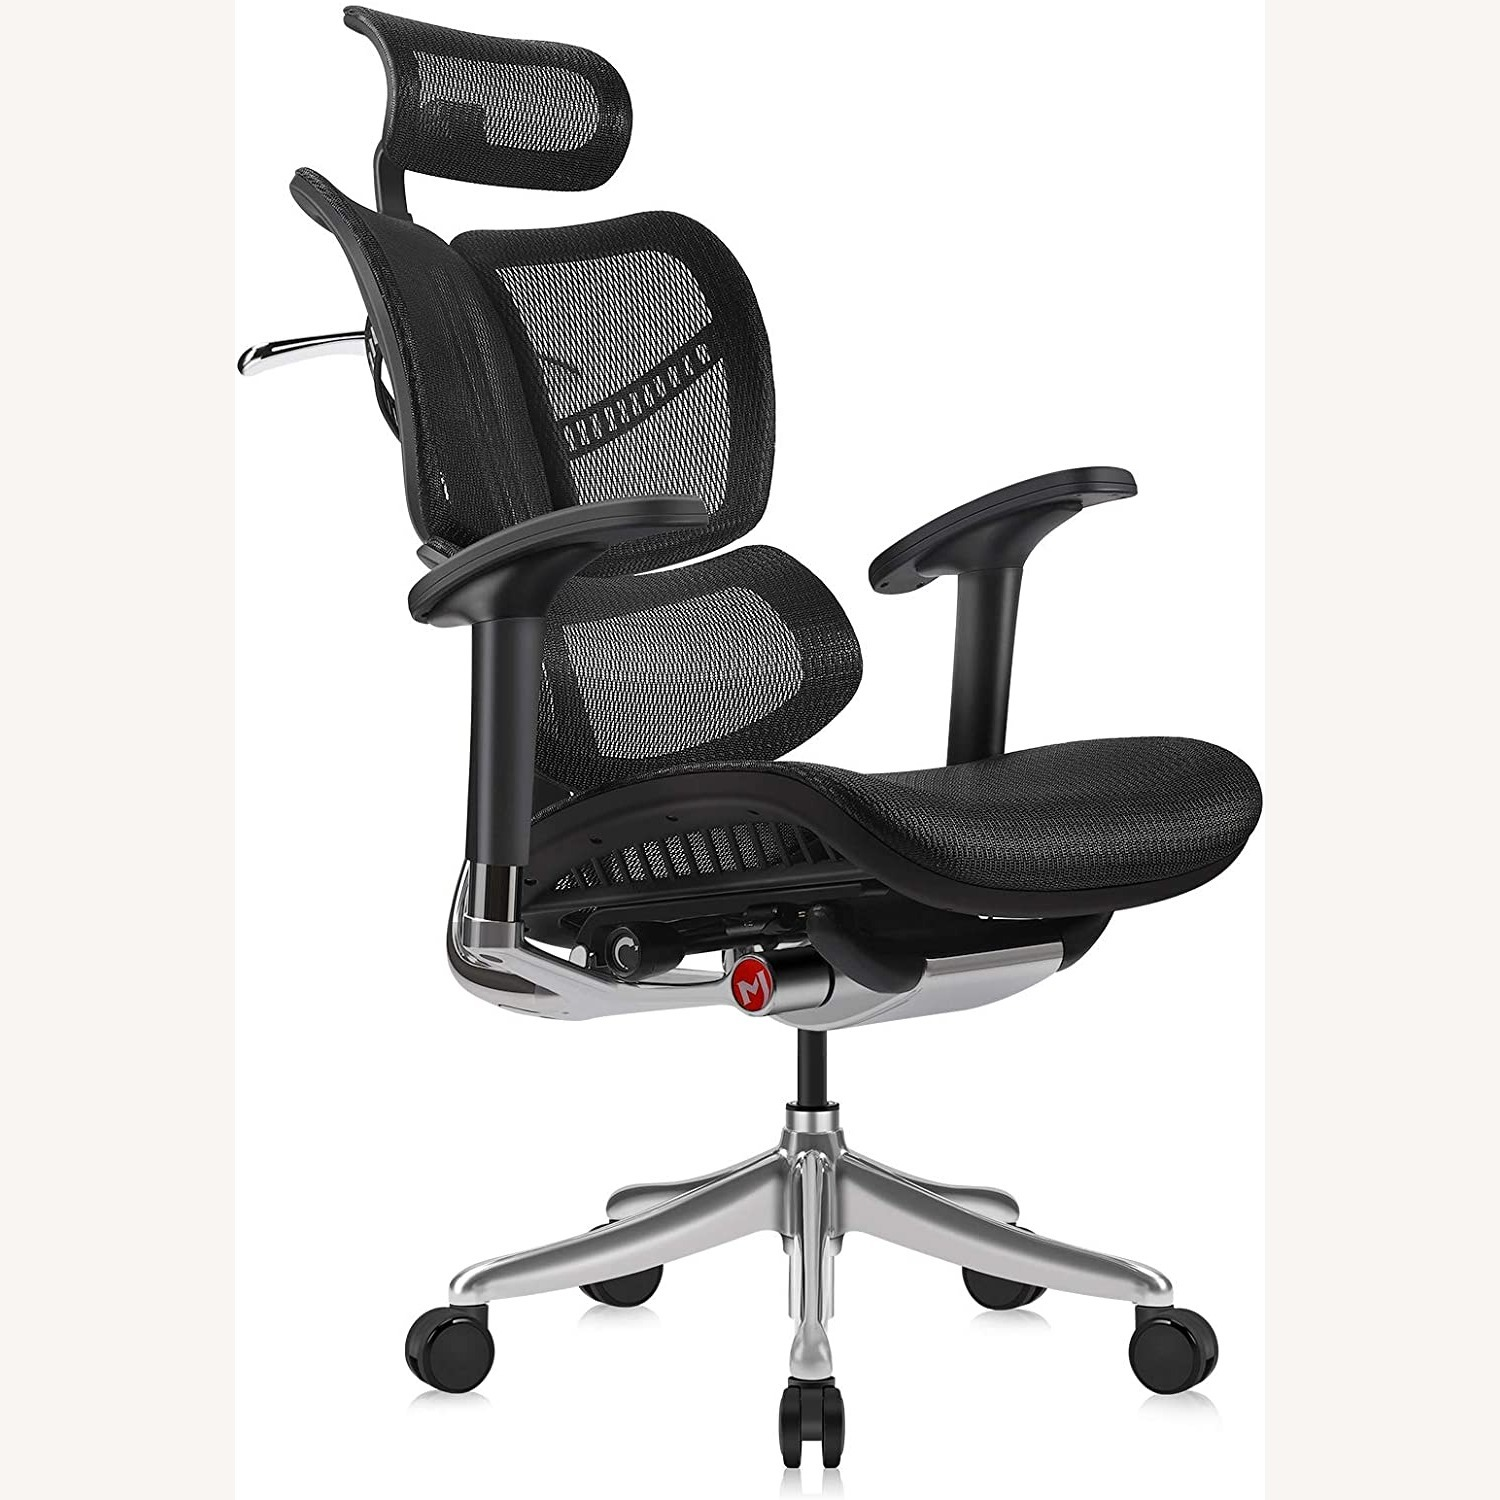 Ergonomic Office Chair with Headrest - image-3